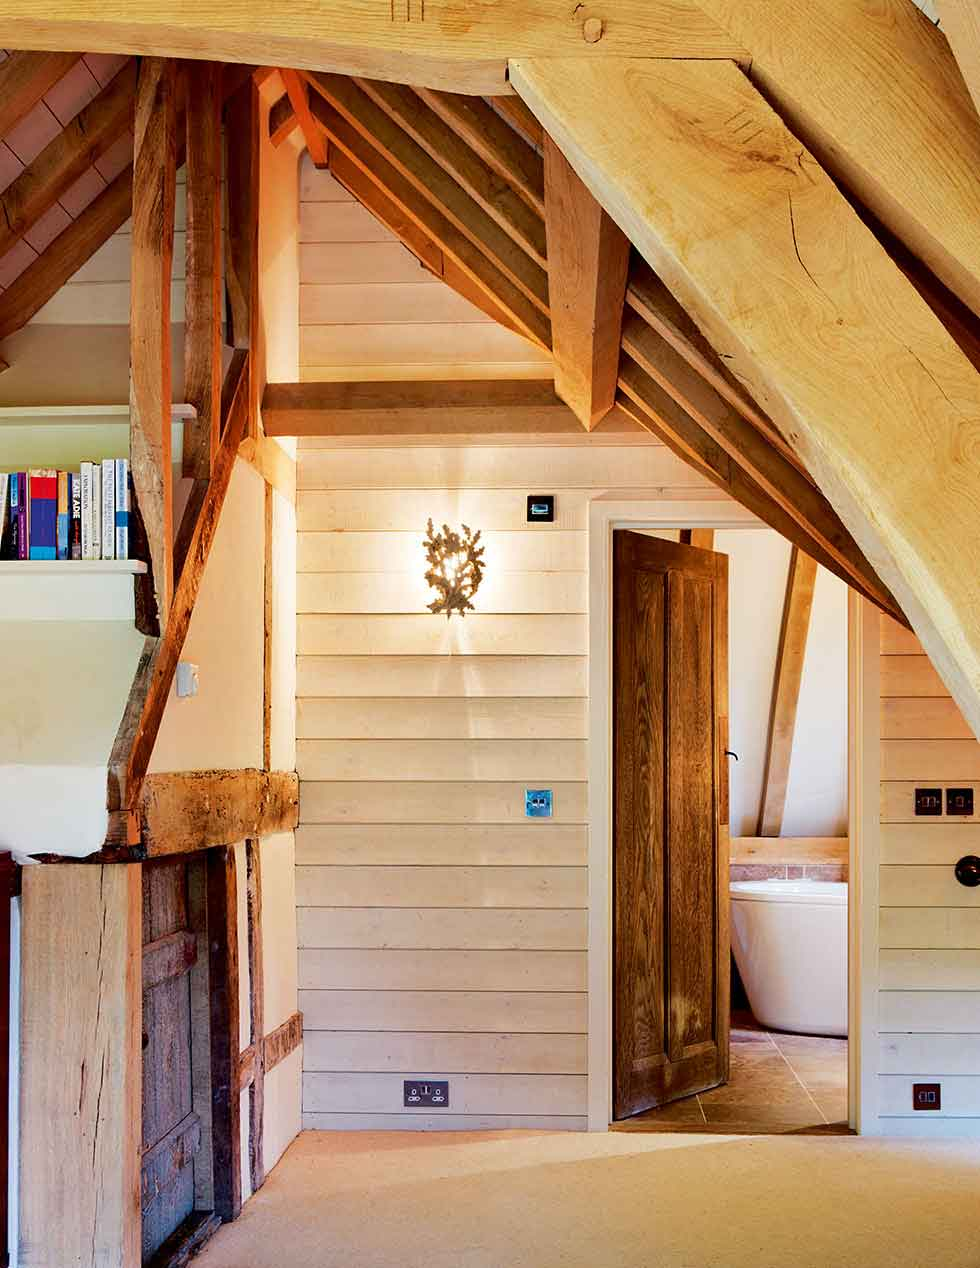 The landing leading to the bathroom